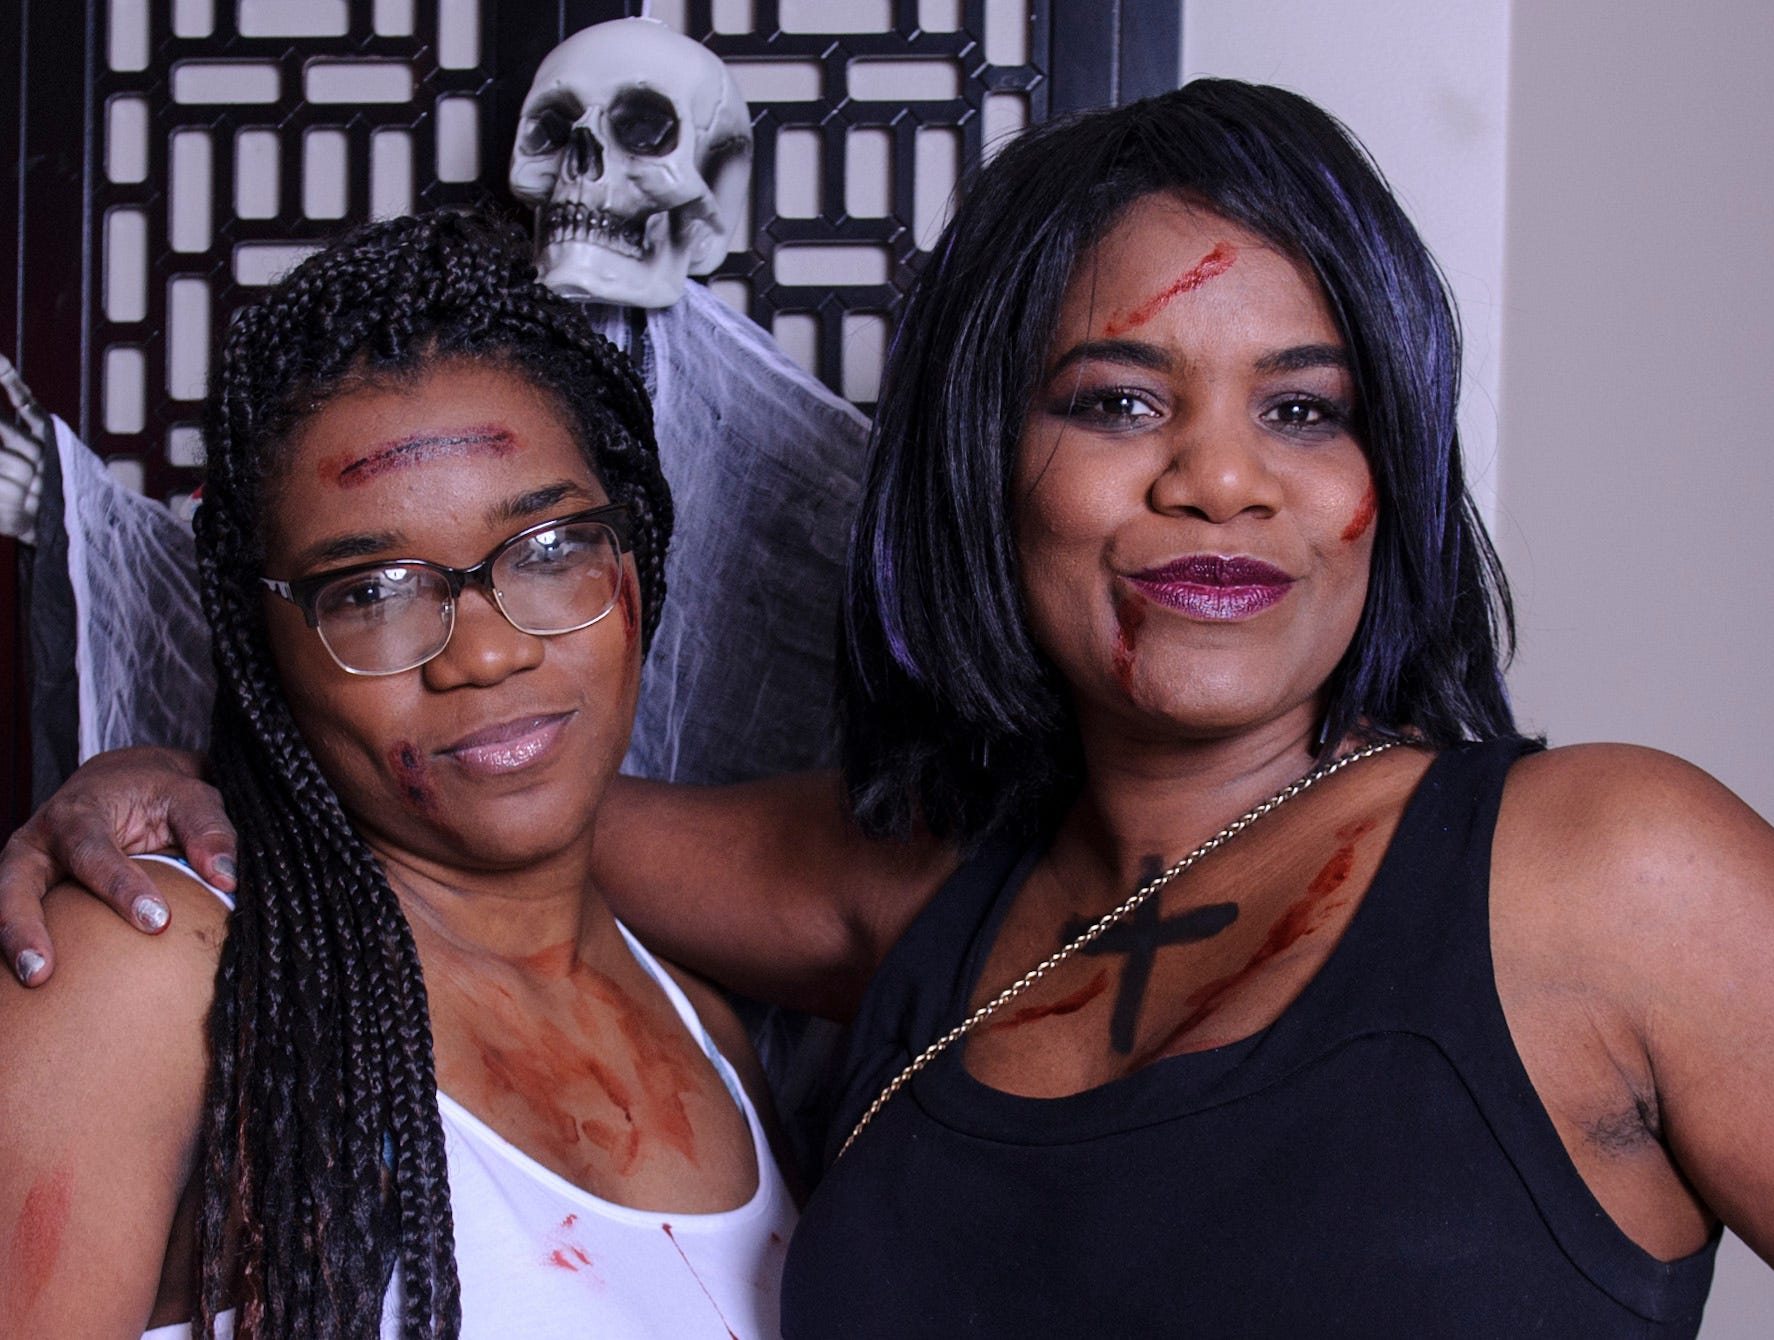 Ashley Simmions and Loralie Mitchell at the Zombie Prom on Saturday, Oct. 20, 2018.